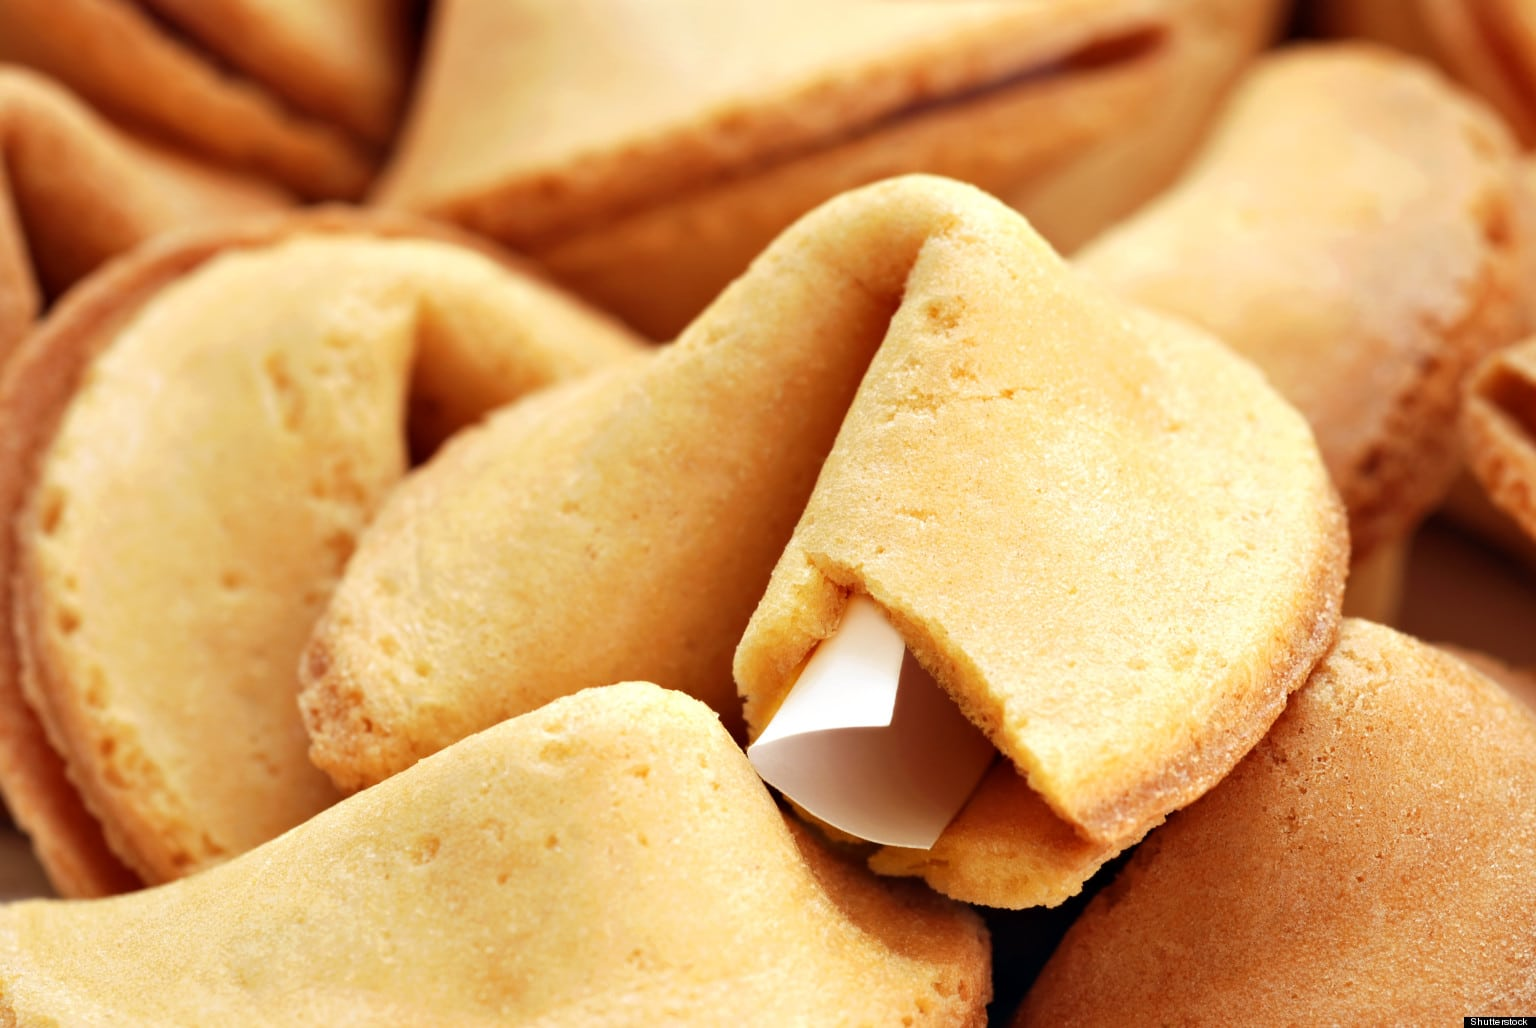 The Intriguing History Of The Fortune Cookie